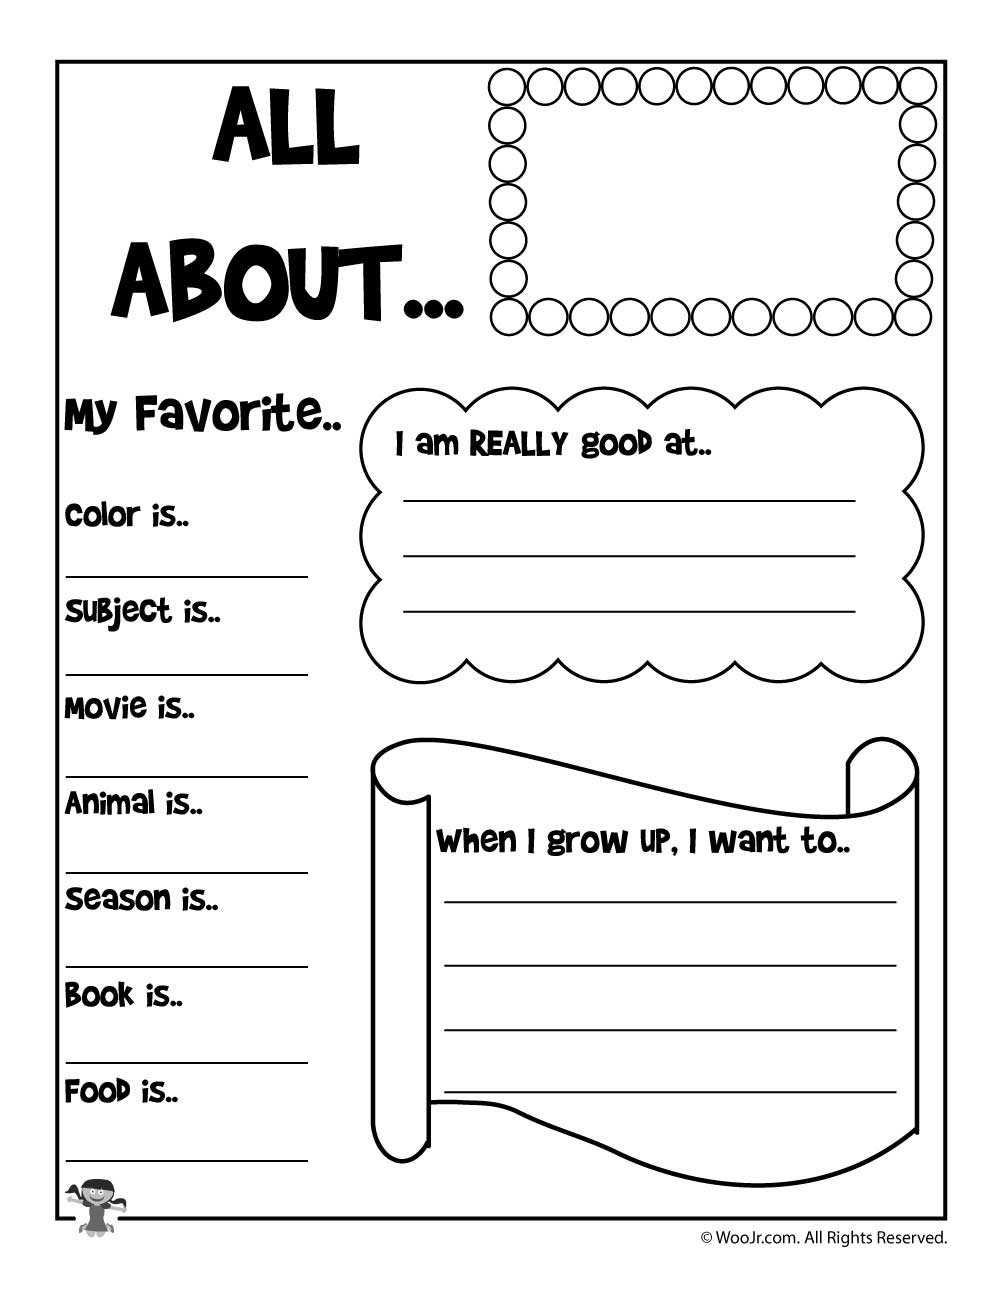 graphic regarding All About Me Printable Worksheets titled All Concerning Me Printable Worksheet Woo! Jr. Youngsters Pursuits